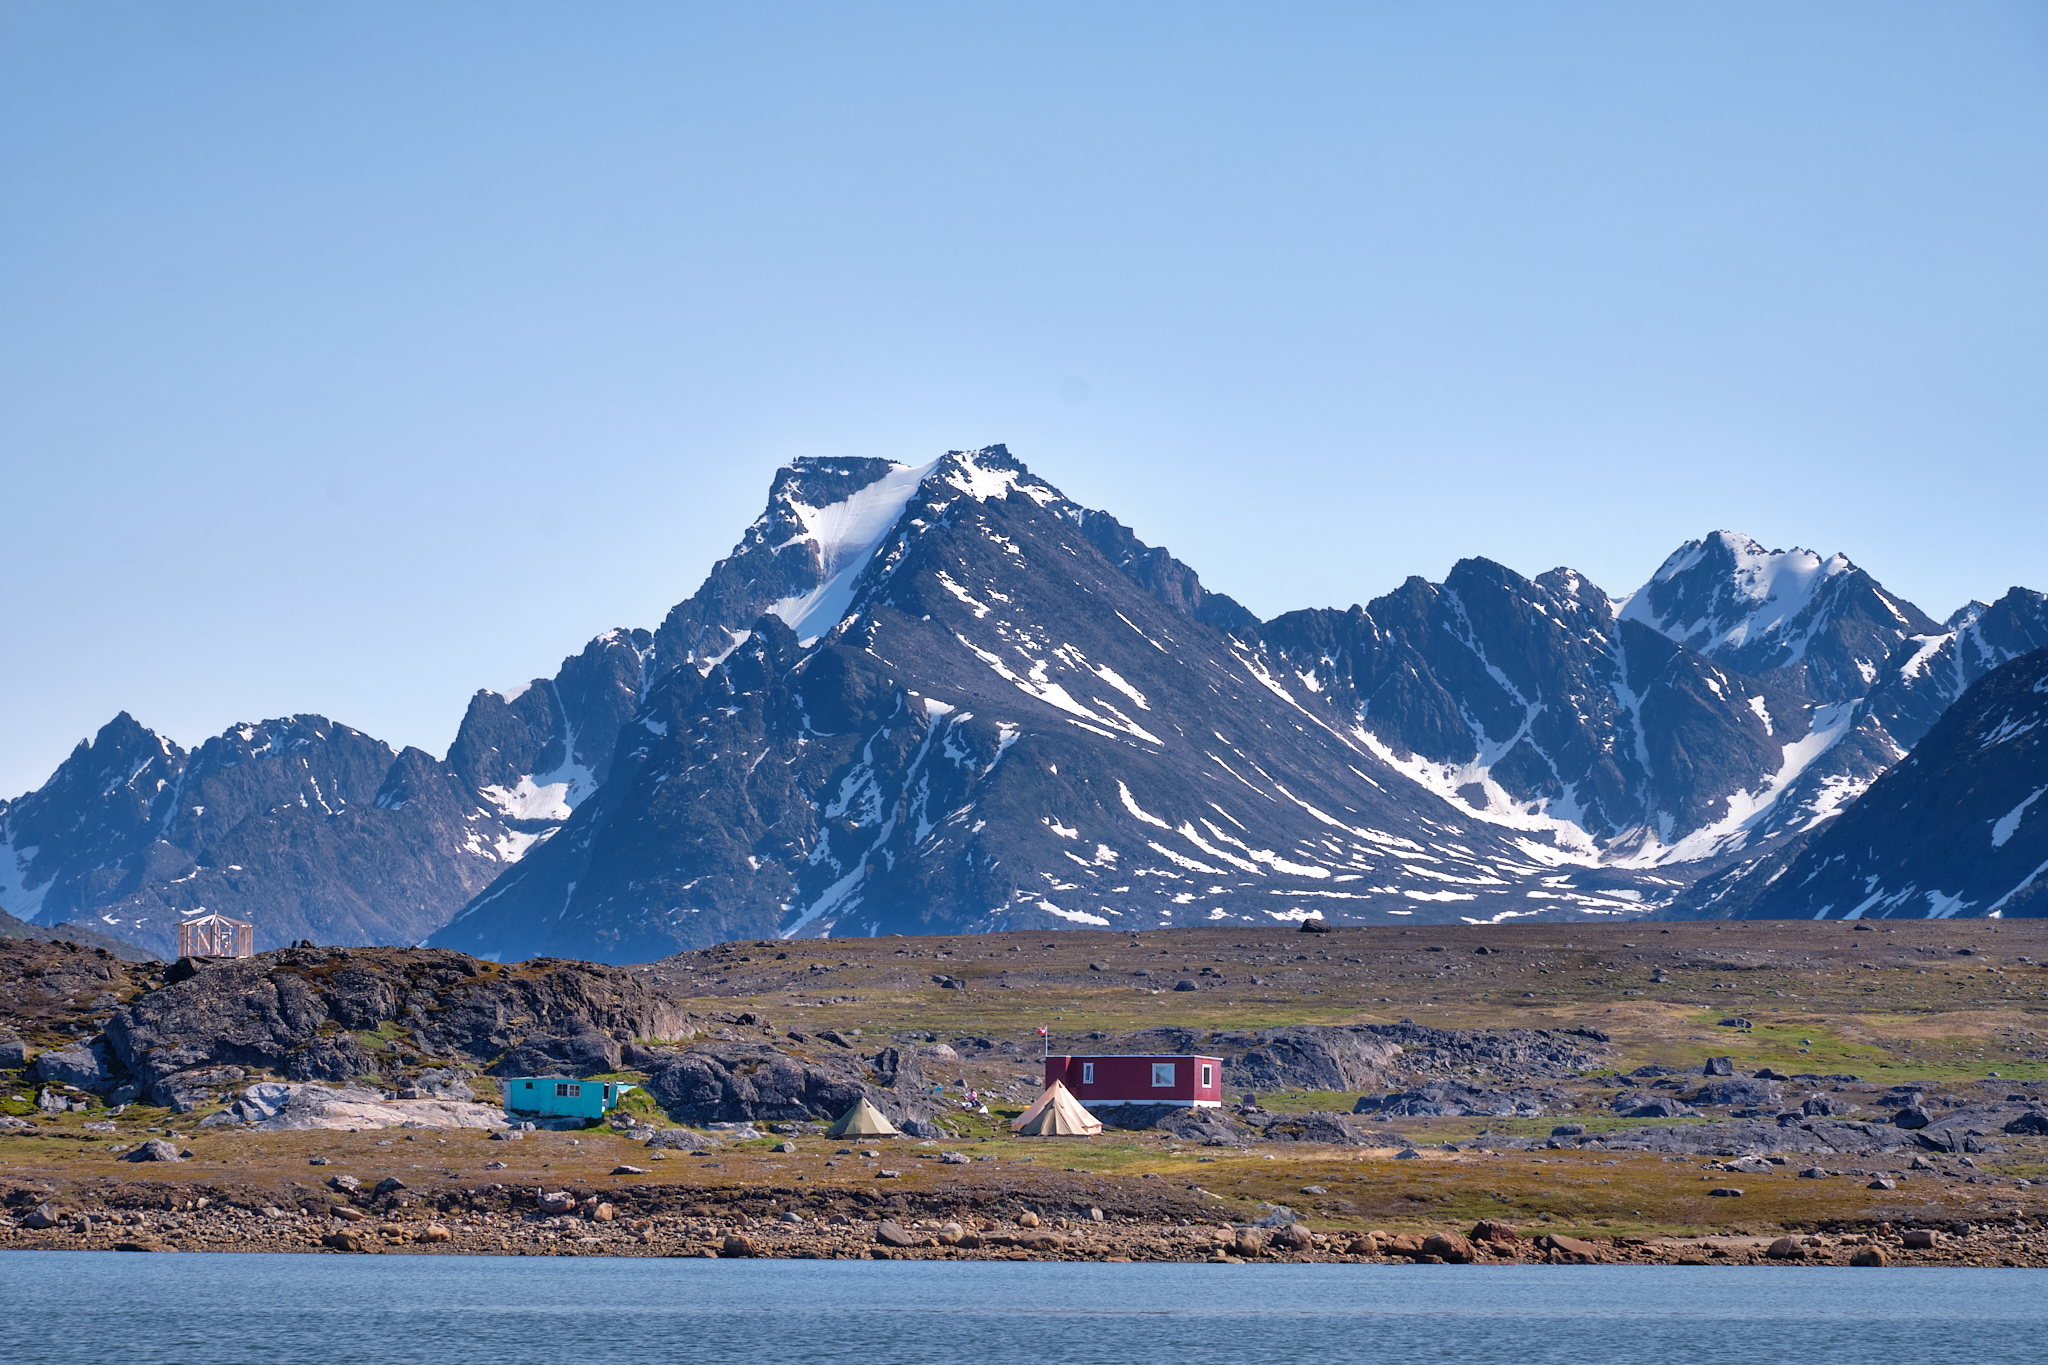 the camp at Sassannguit as seen from the water - Greenland